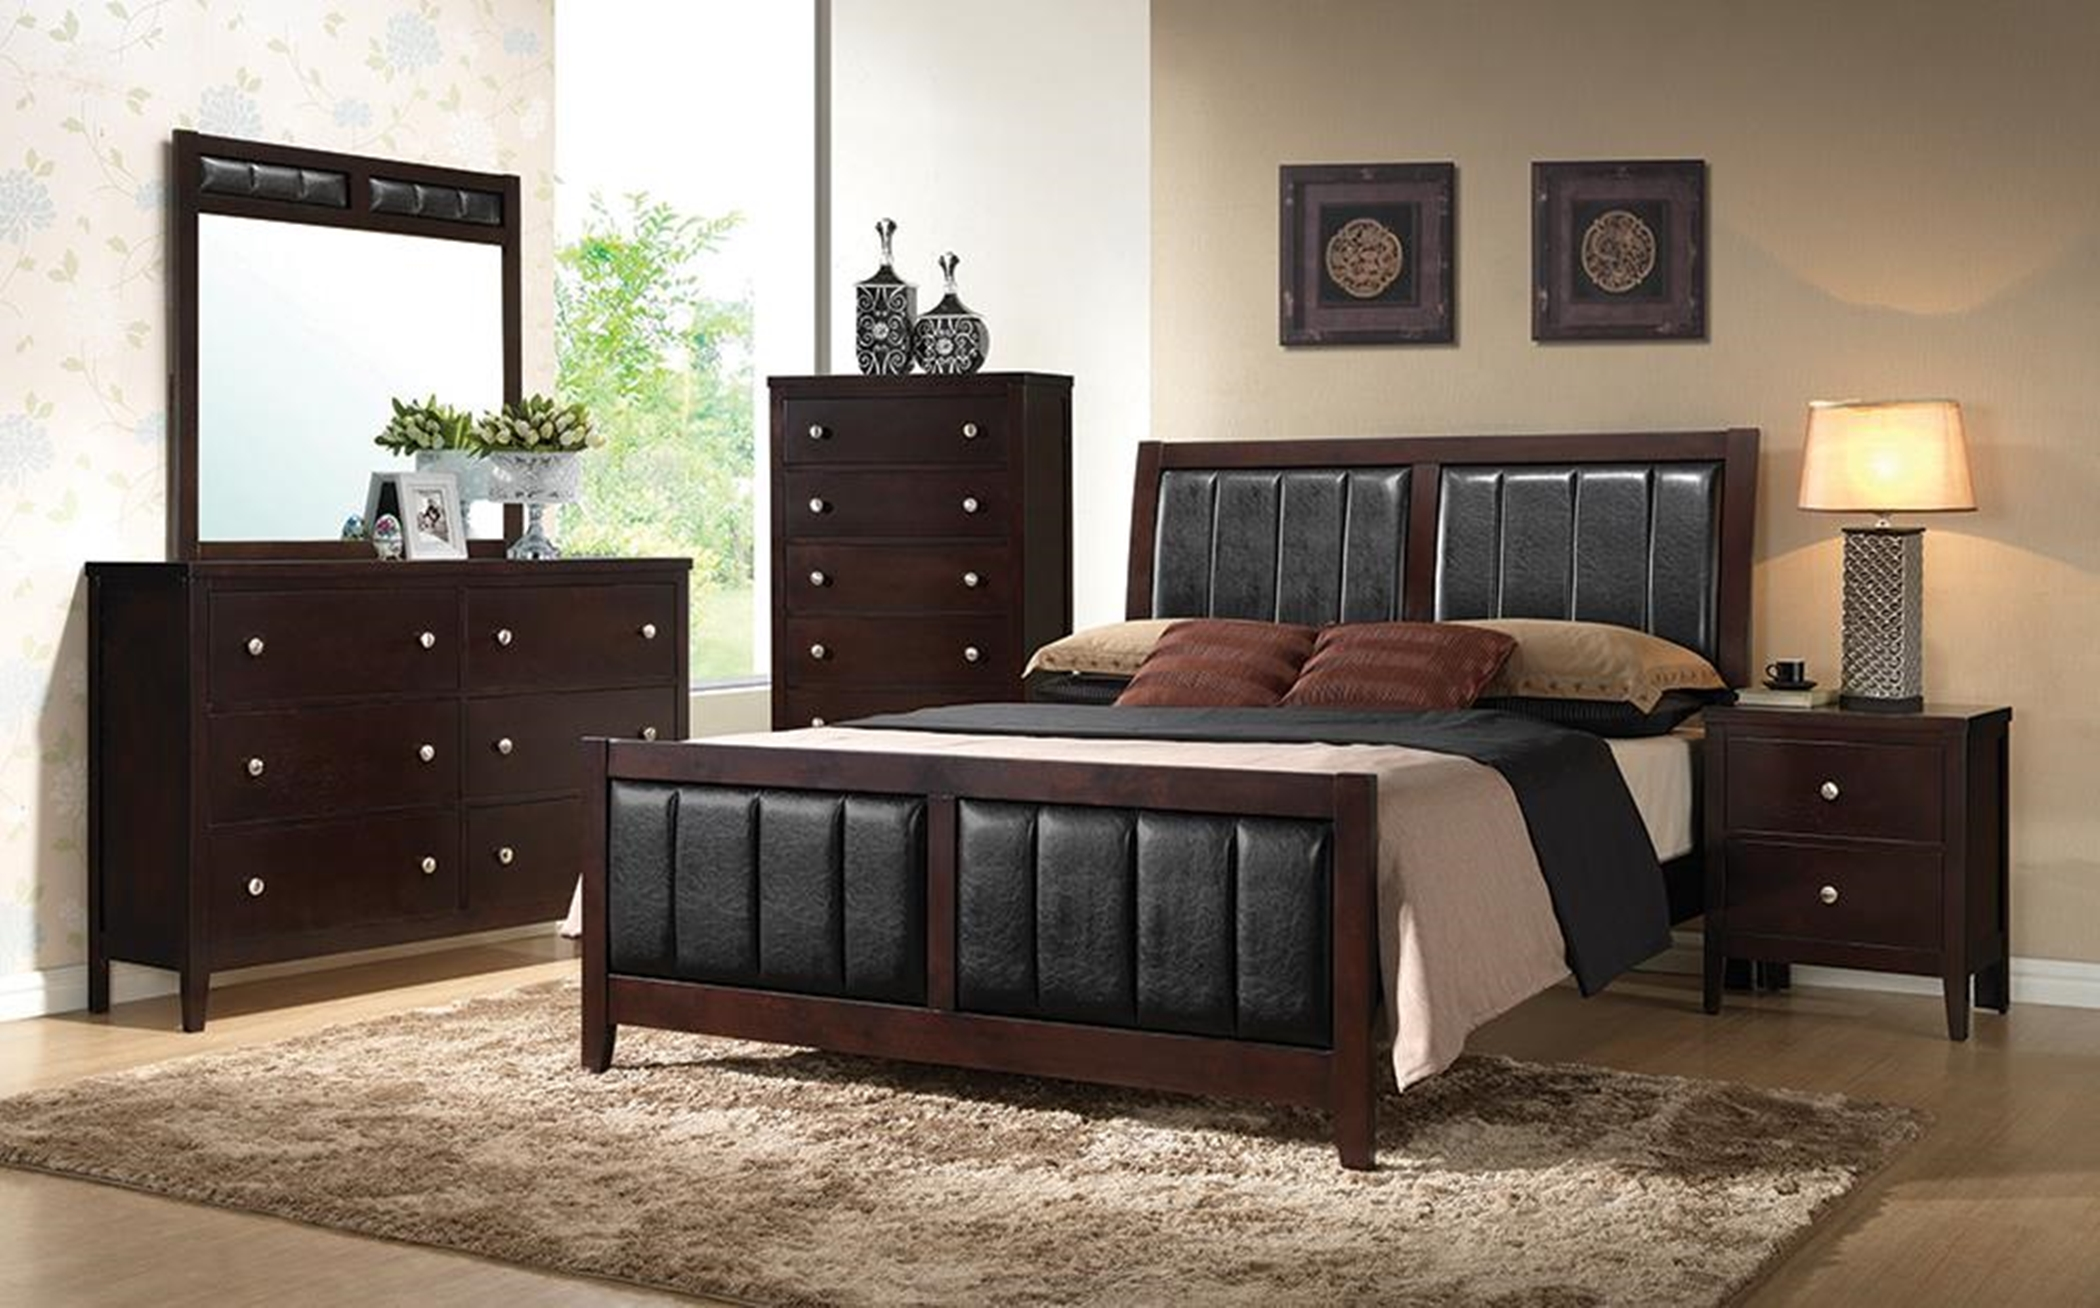 Carlton Transitional Capp. Queen Bed